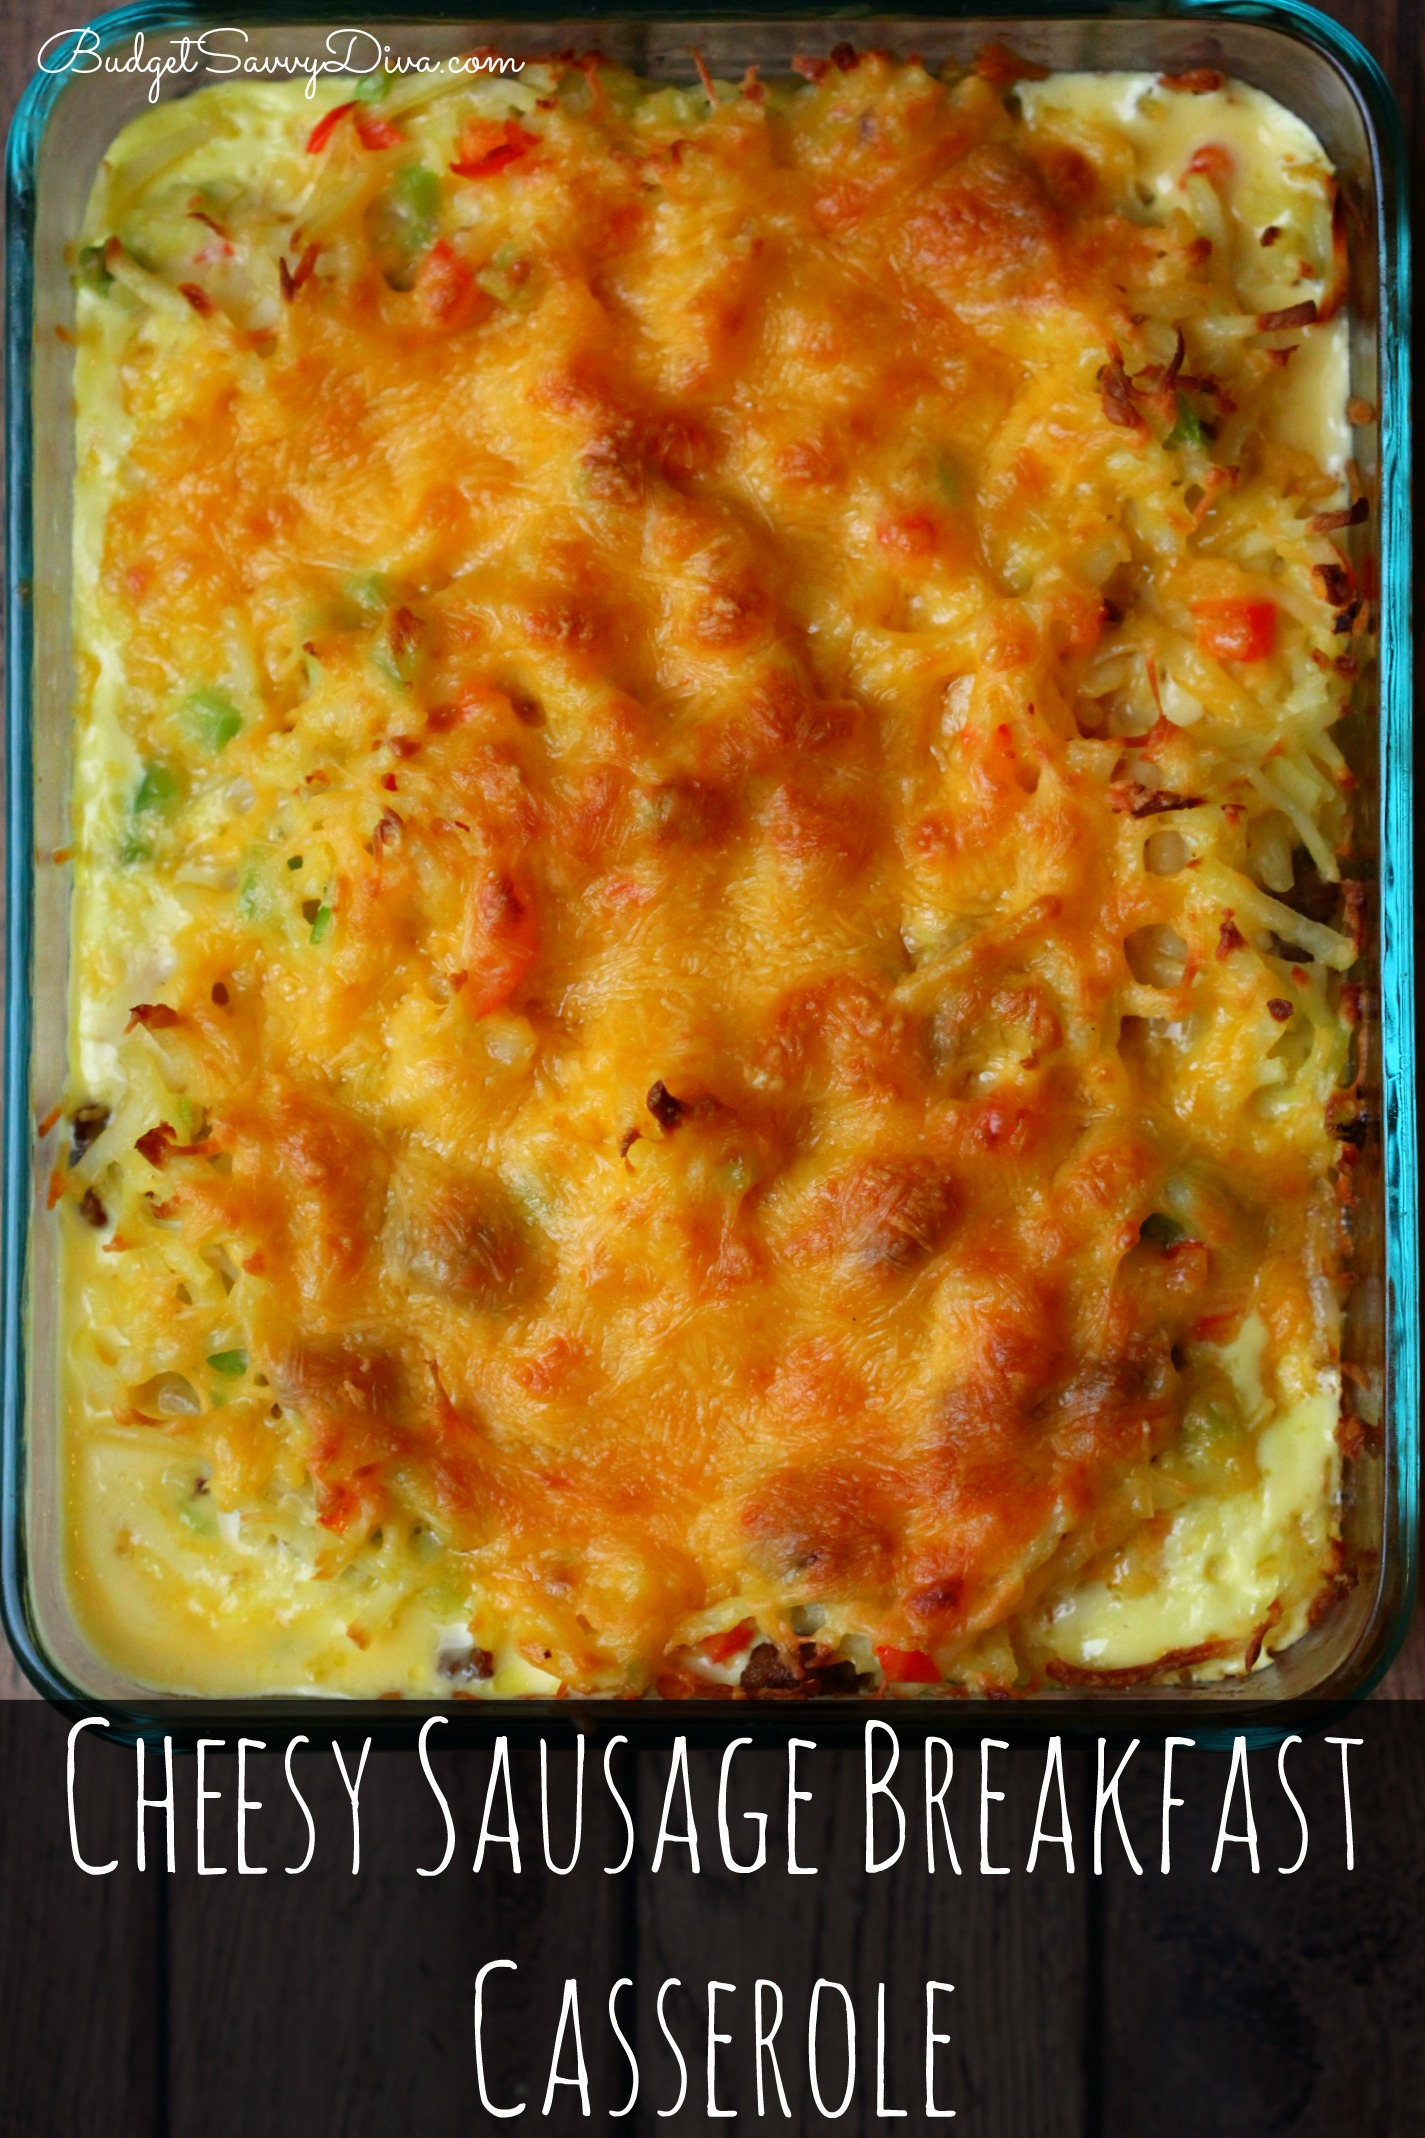 Cheesy Sausage Breakfast Casserole Recipe | Budget Savvy Diva